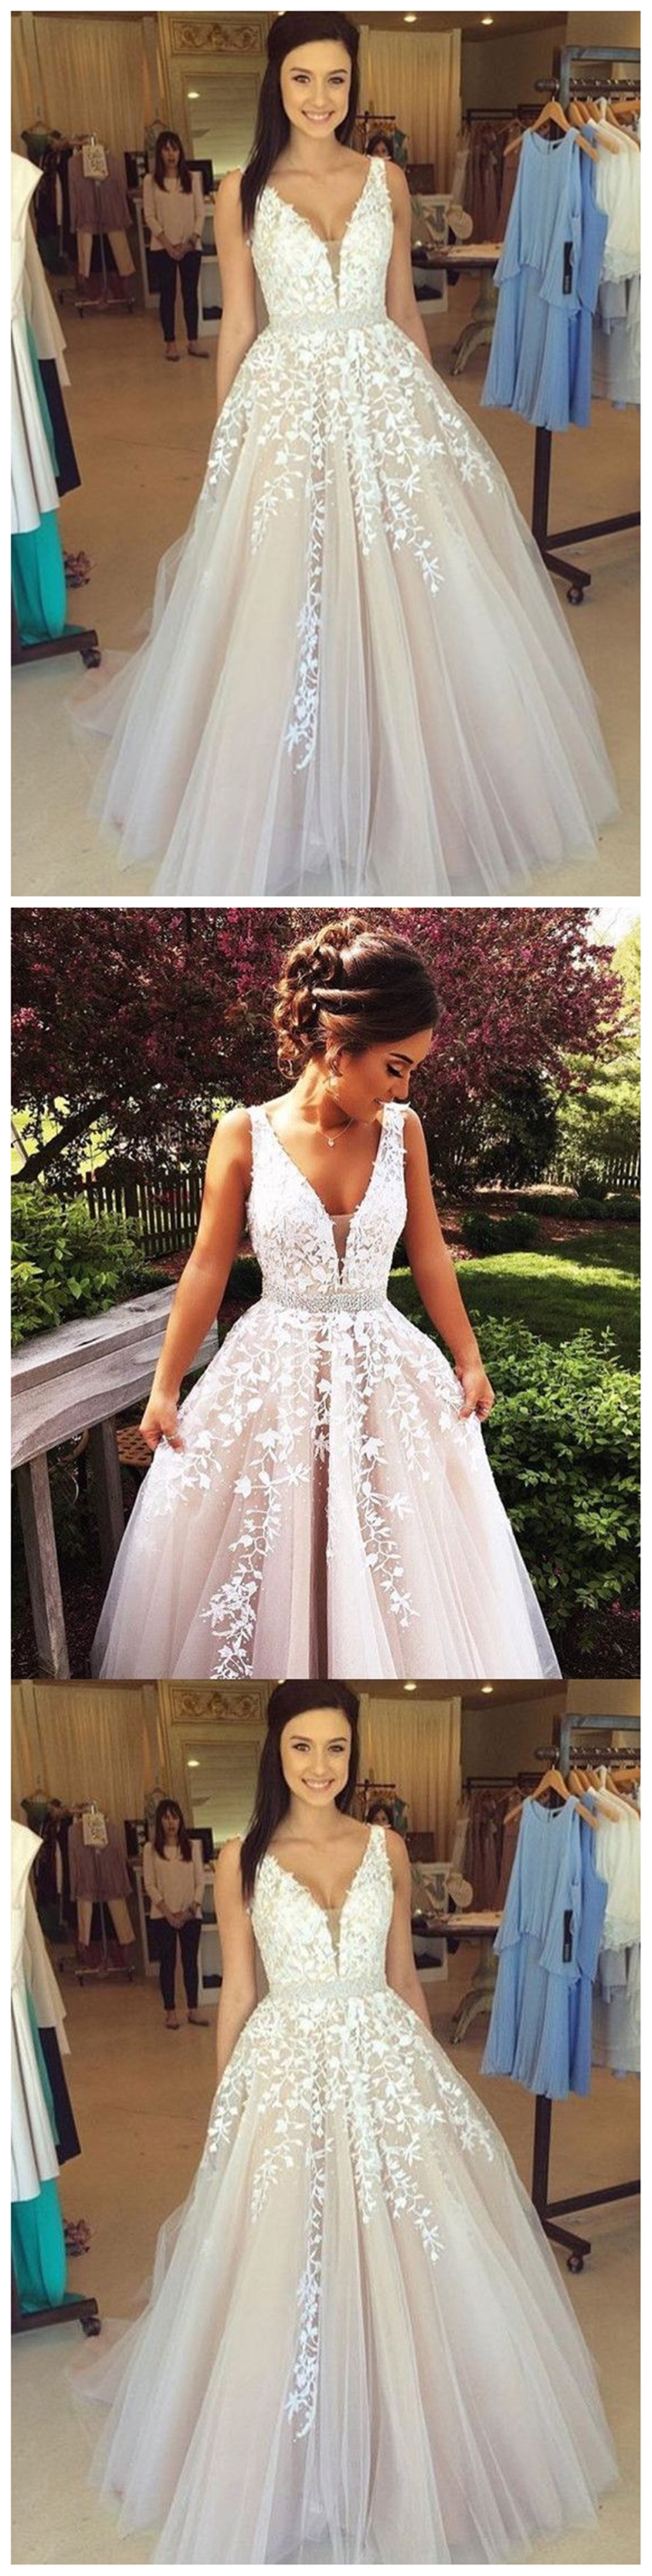 Lace tulle prom dress a line prom dress lace wedding dress